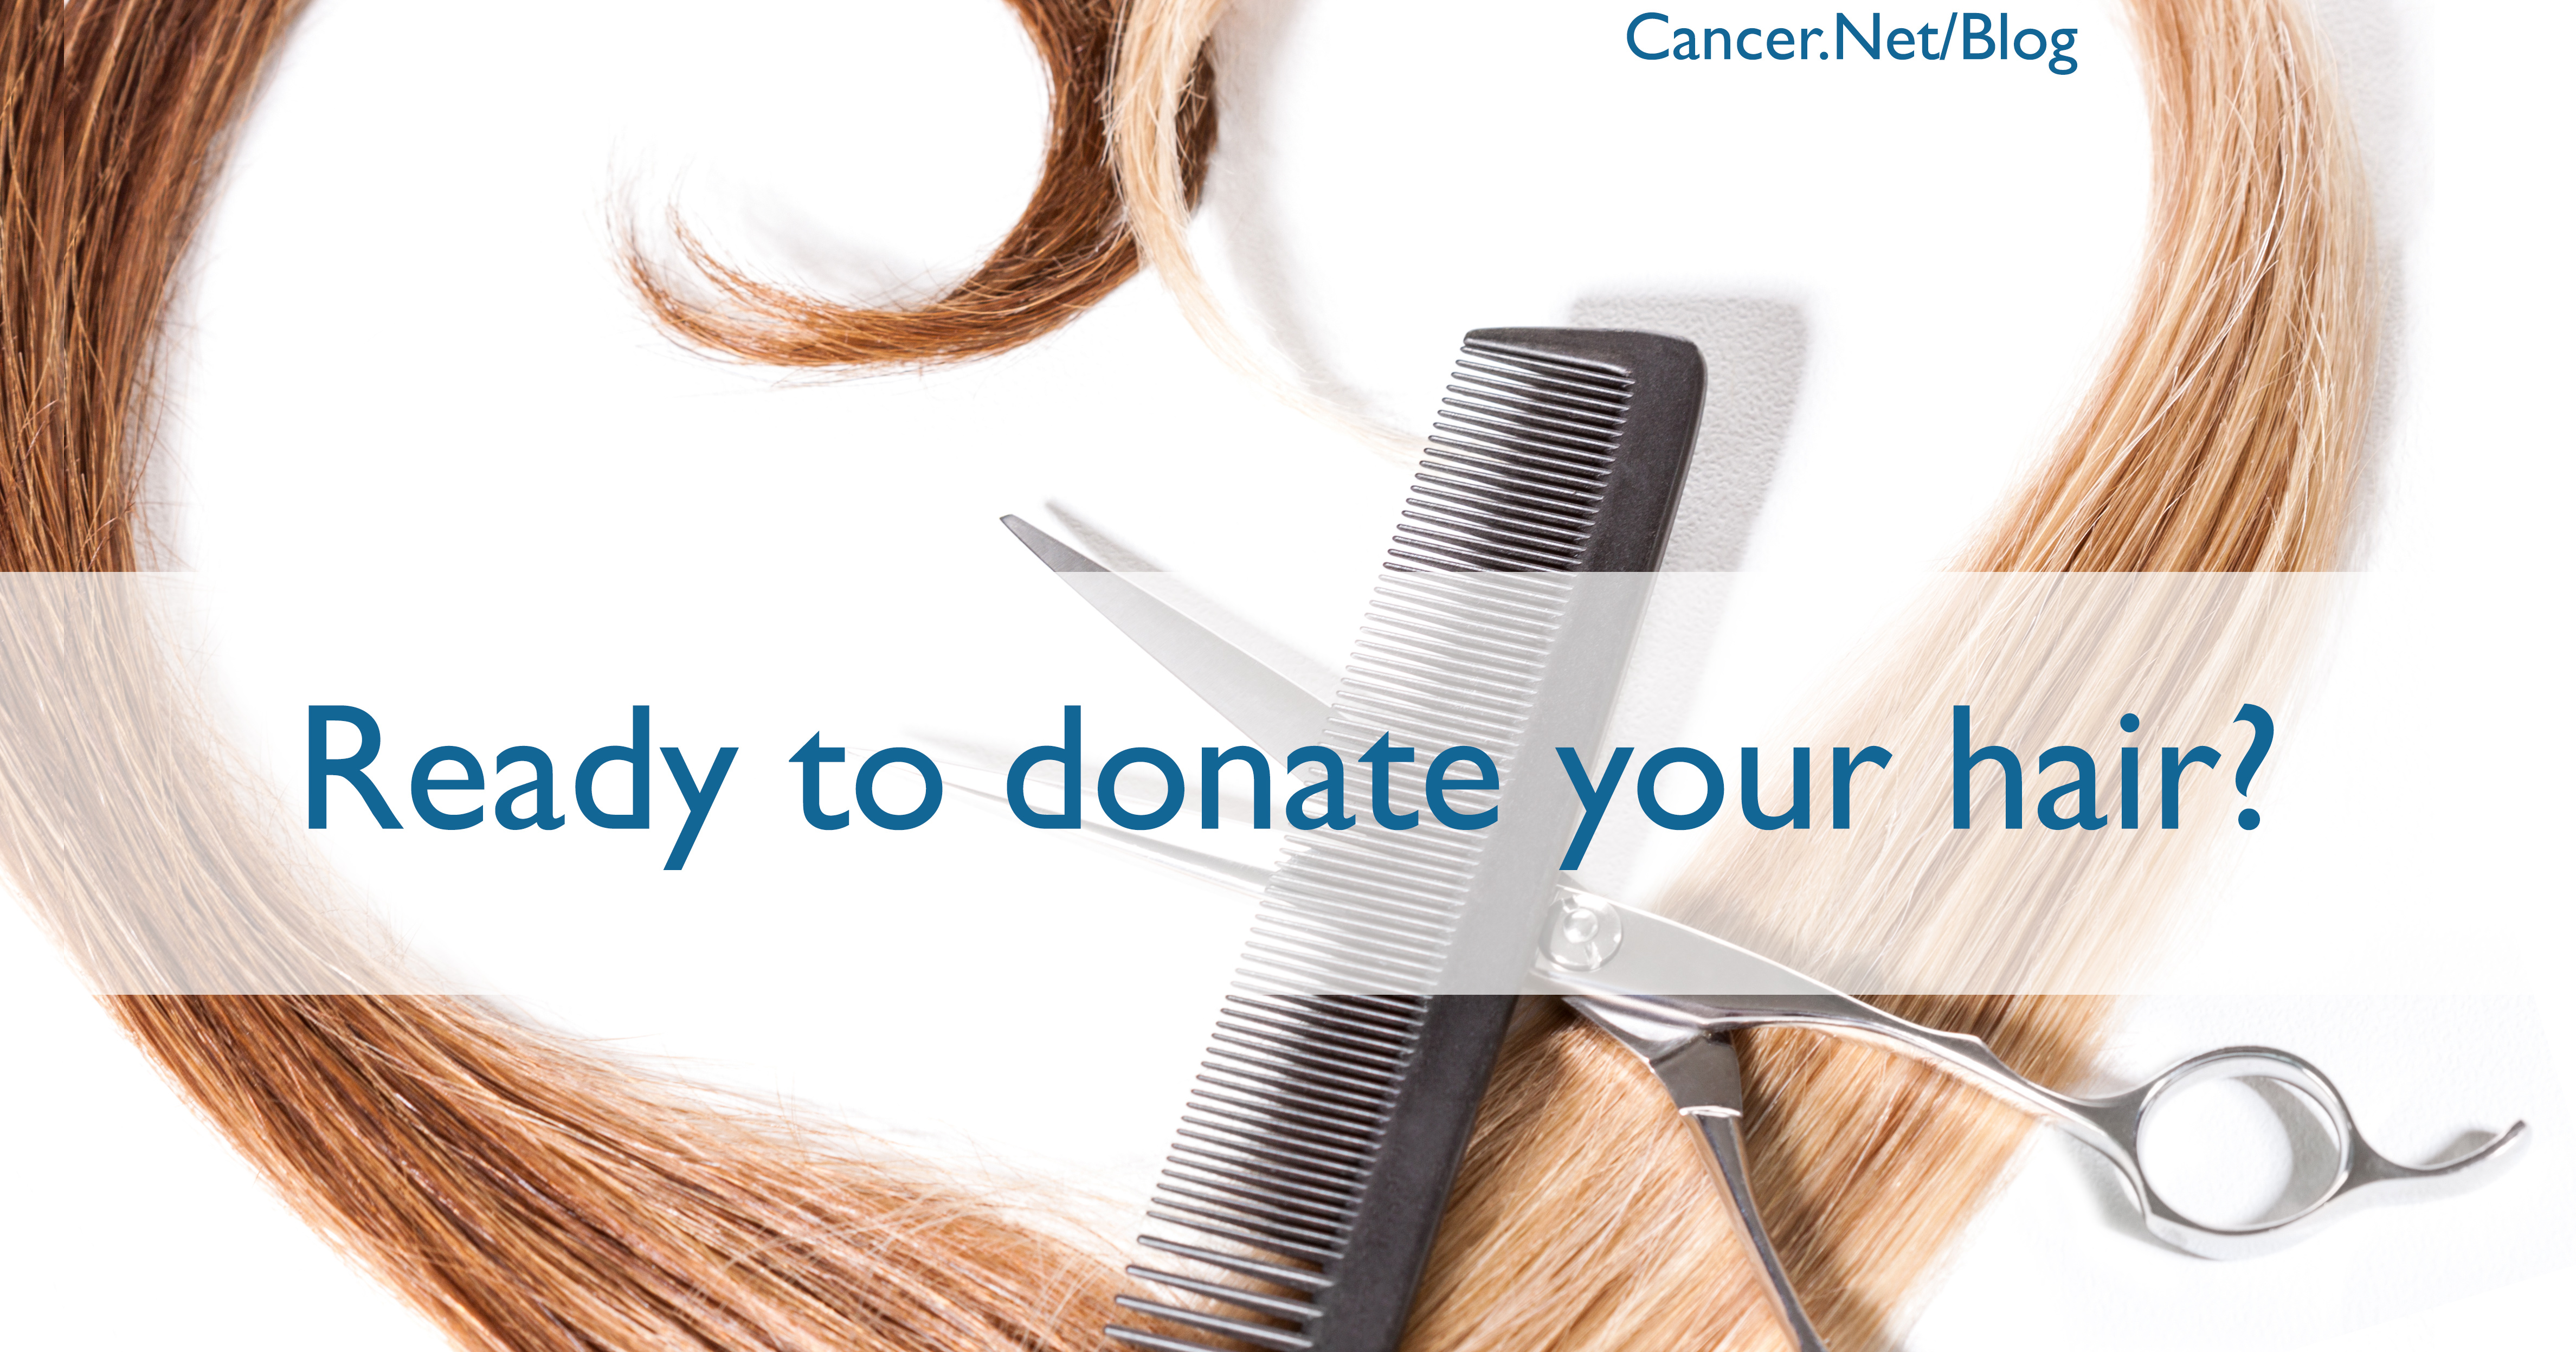 How to Donate Your Hair in 12 Simple Steps  Cancer.Net